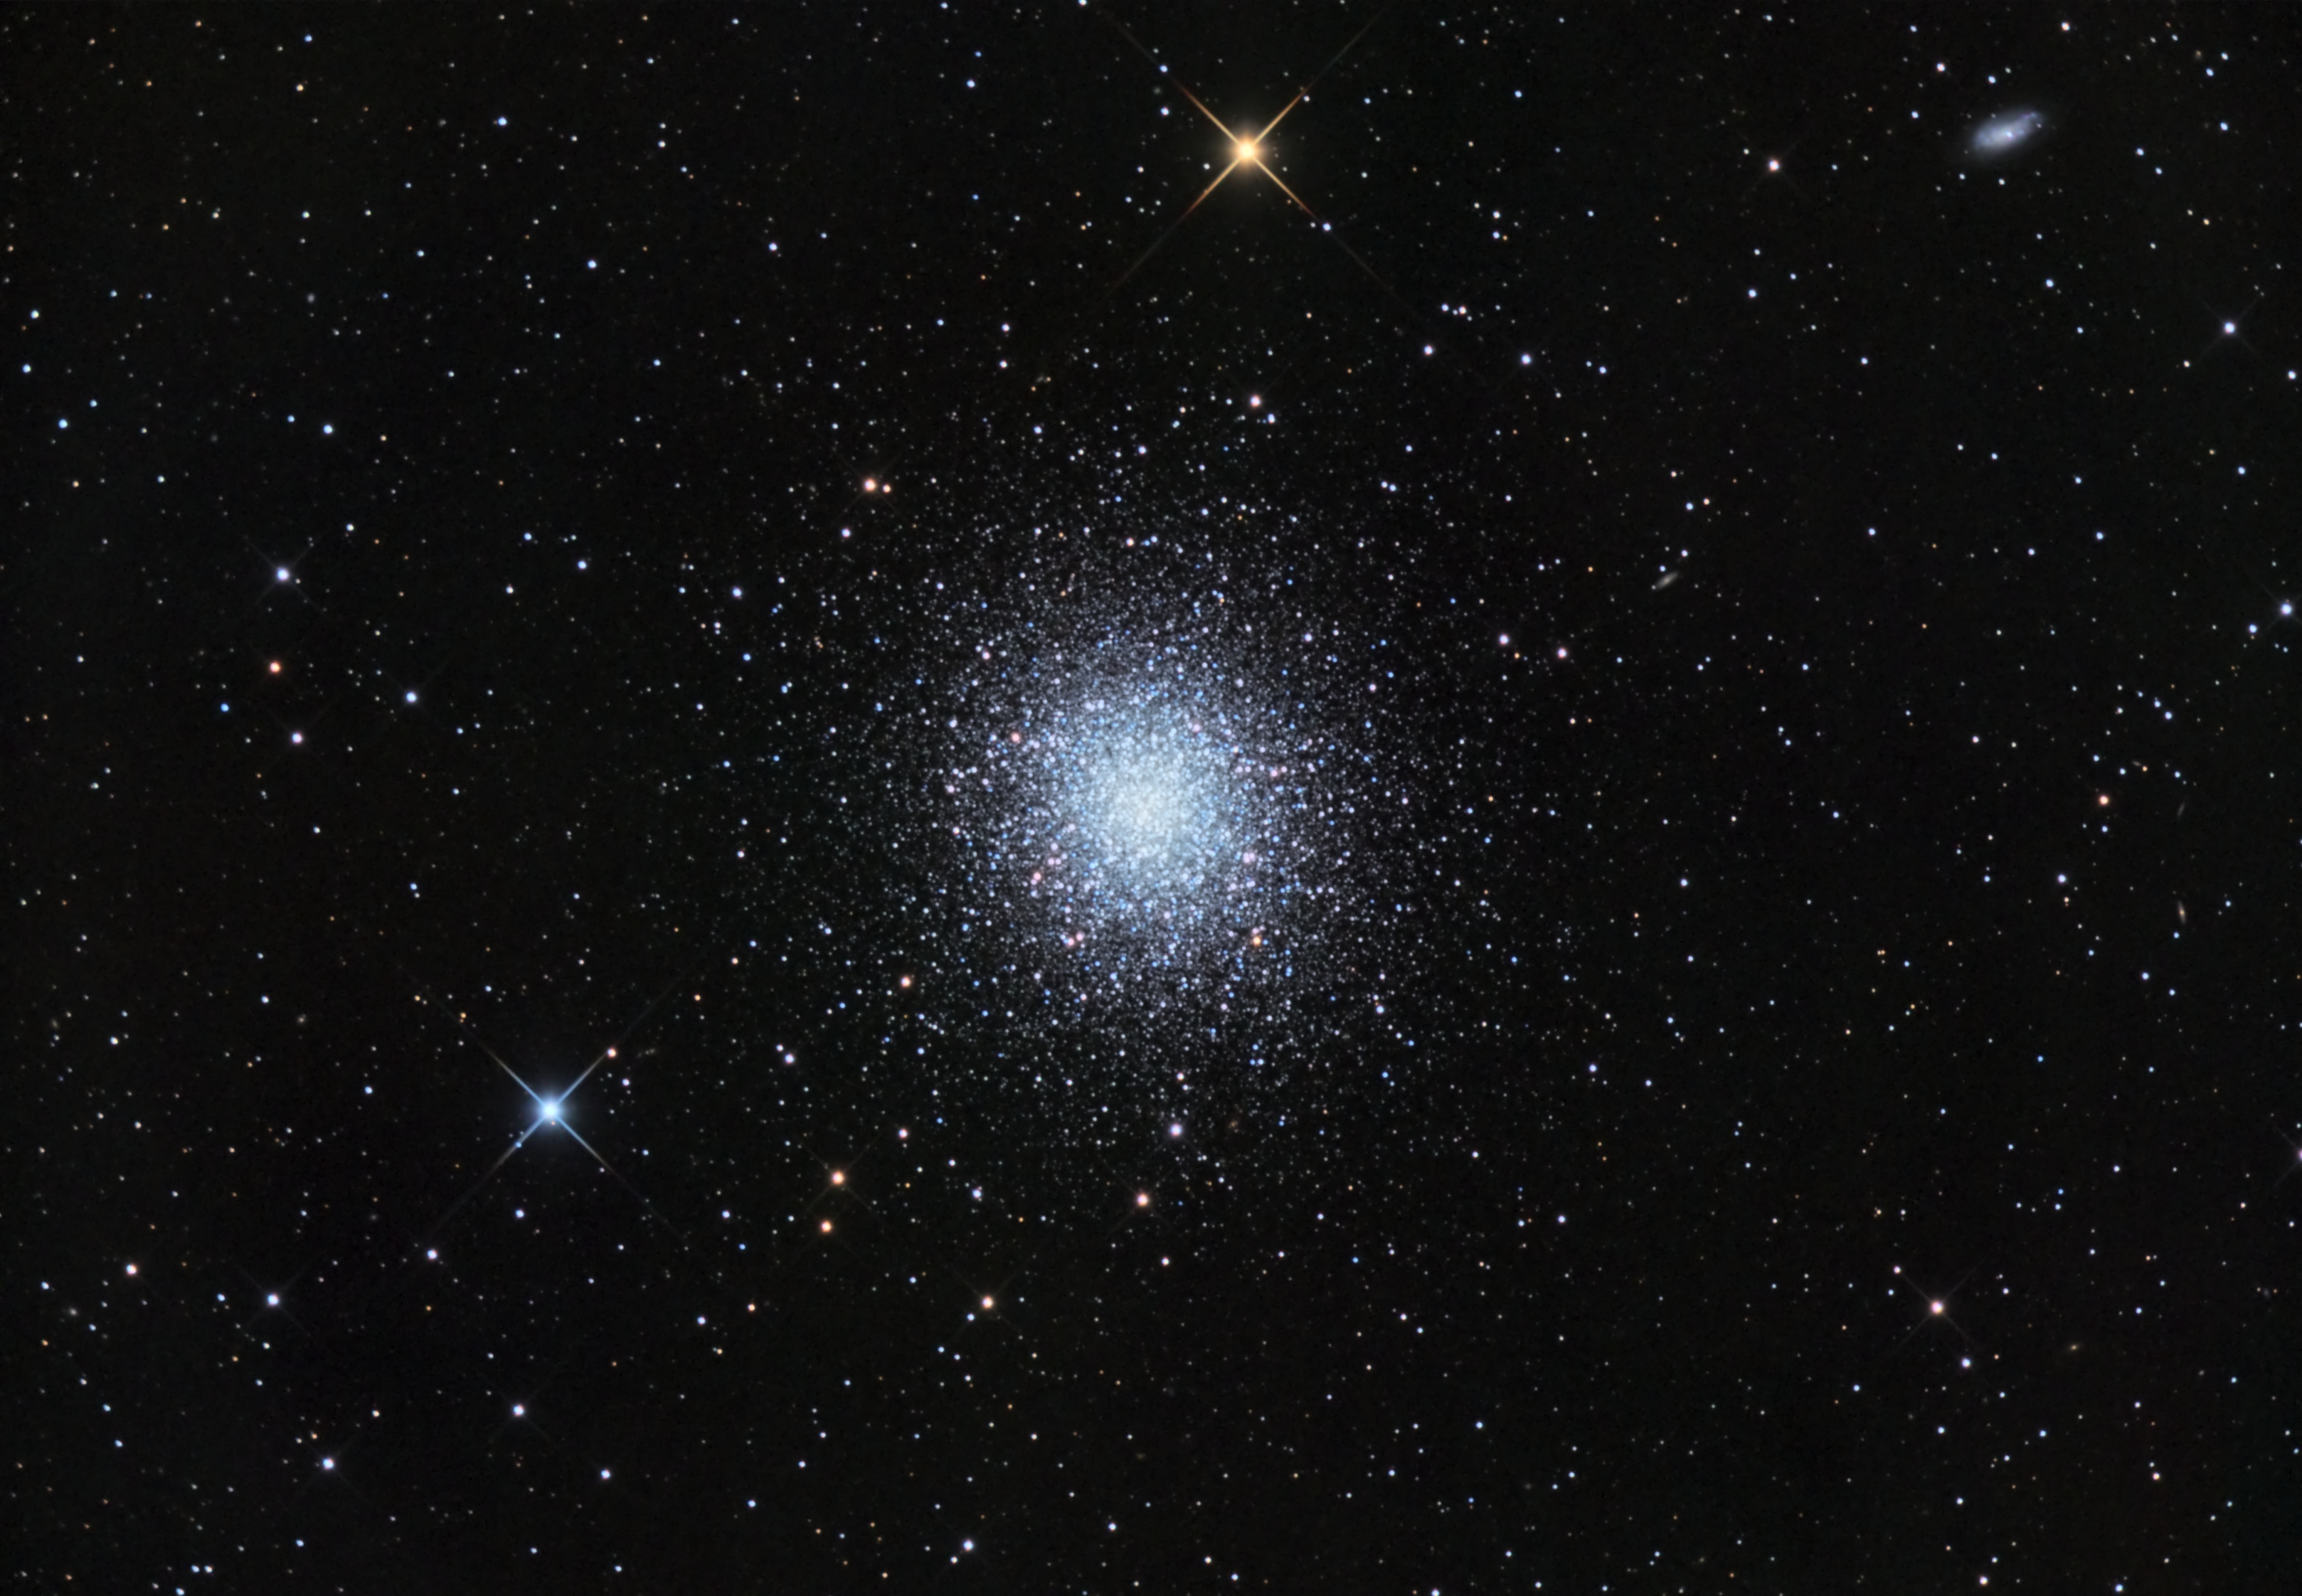 starcluster m13 - photo #8